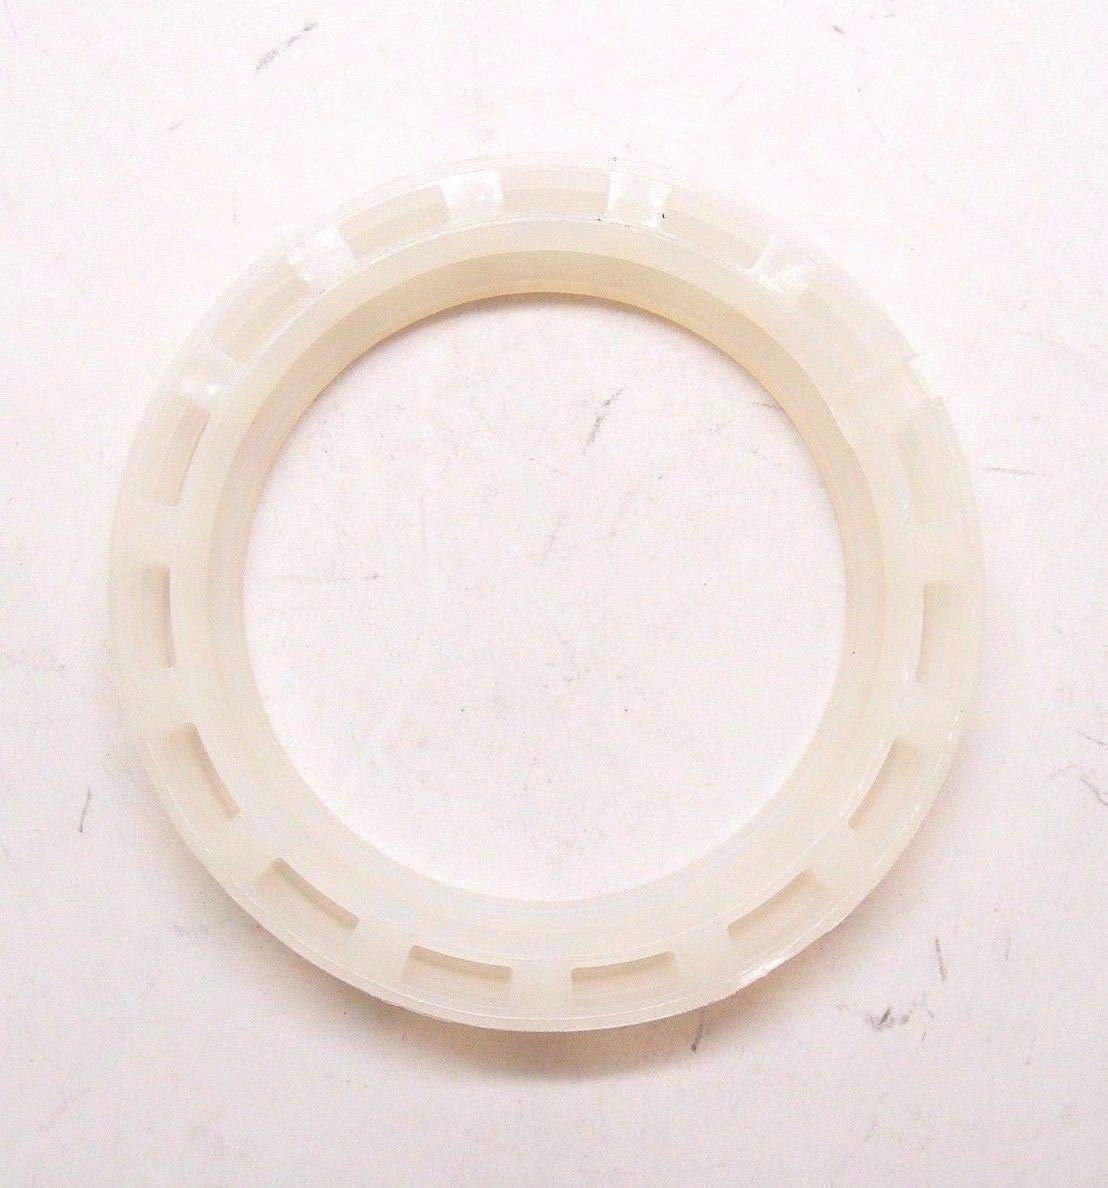 New For Porter Cable 910767 Collar - Pu FC350A Type 1,2, FM350A KINN